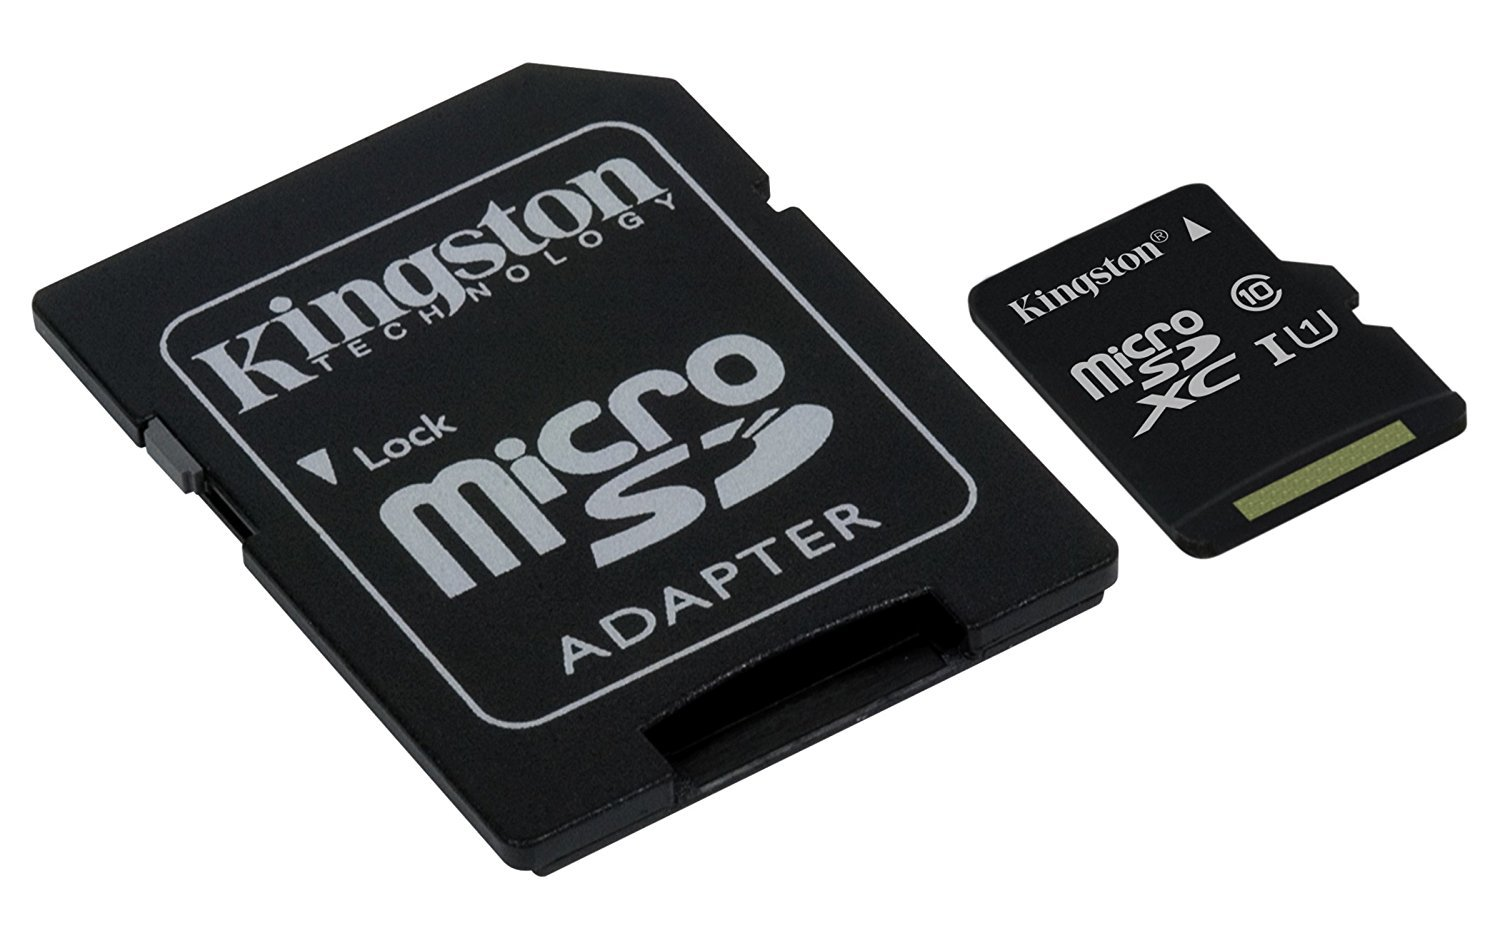 Professional Kingston 256GB Verizon Wireless Ellipsis 10 MicroSDXC Card with custom formatting and Standard SD Adapter! (Class 10, UHS-I) by Custom Kingston for Verizon (Image #6)